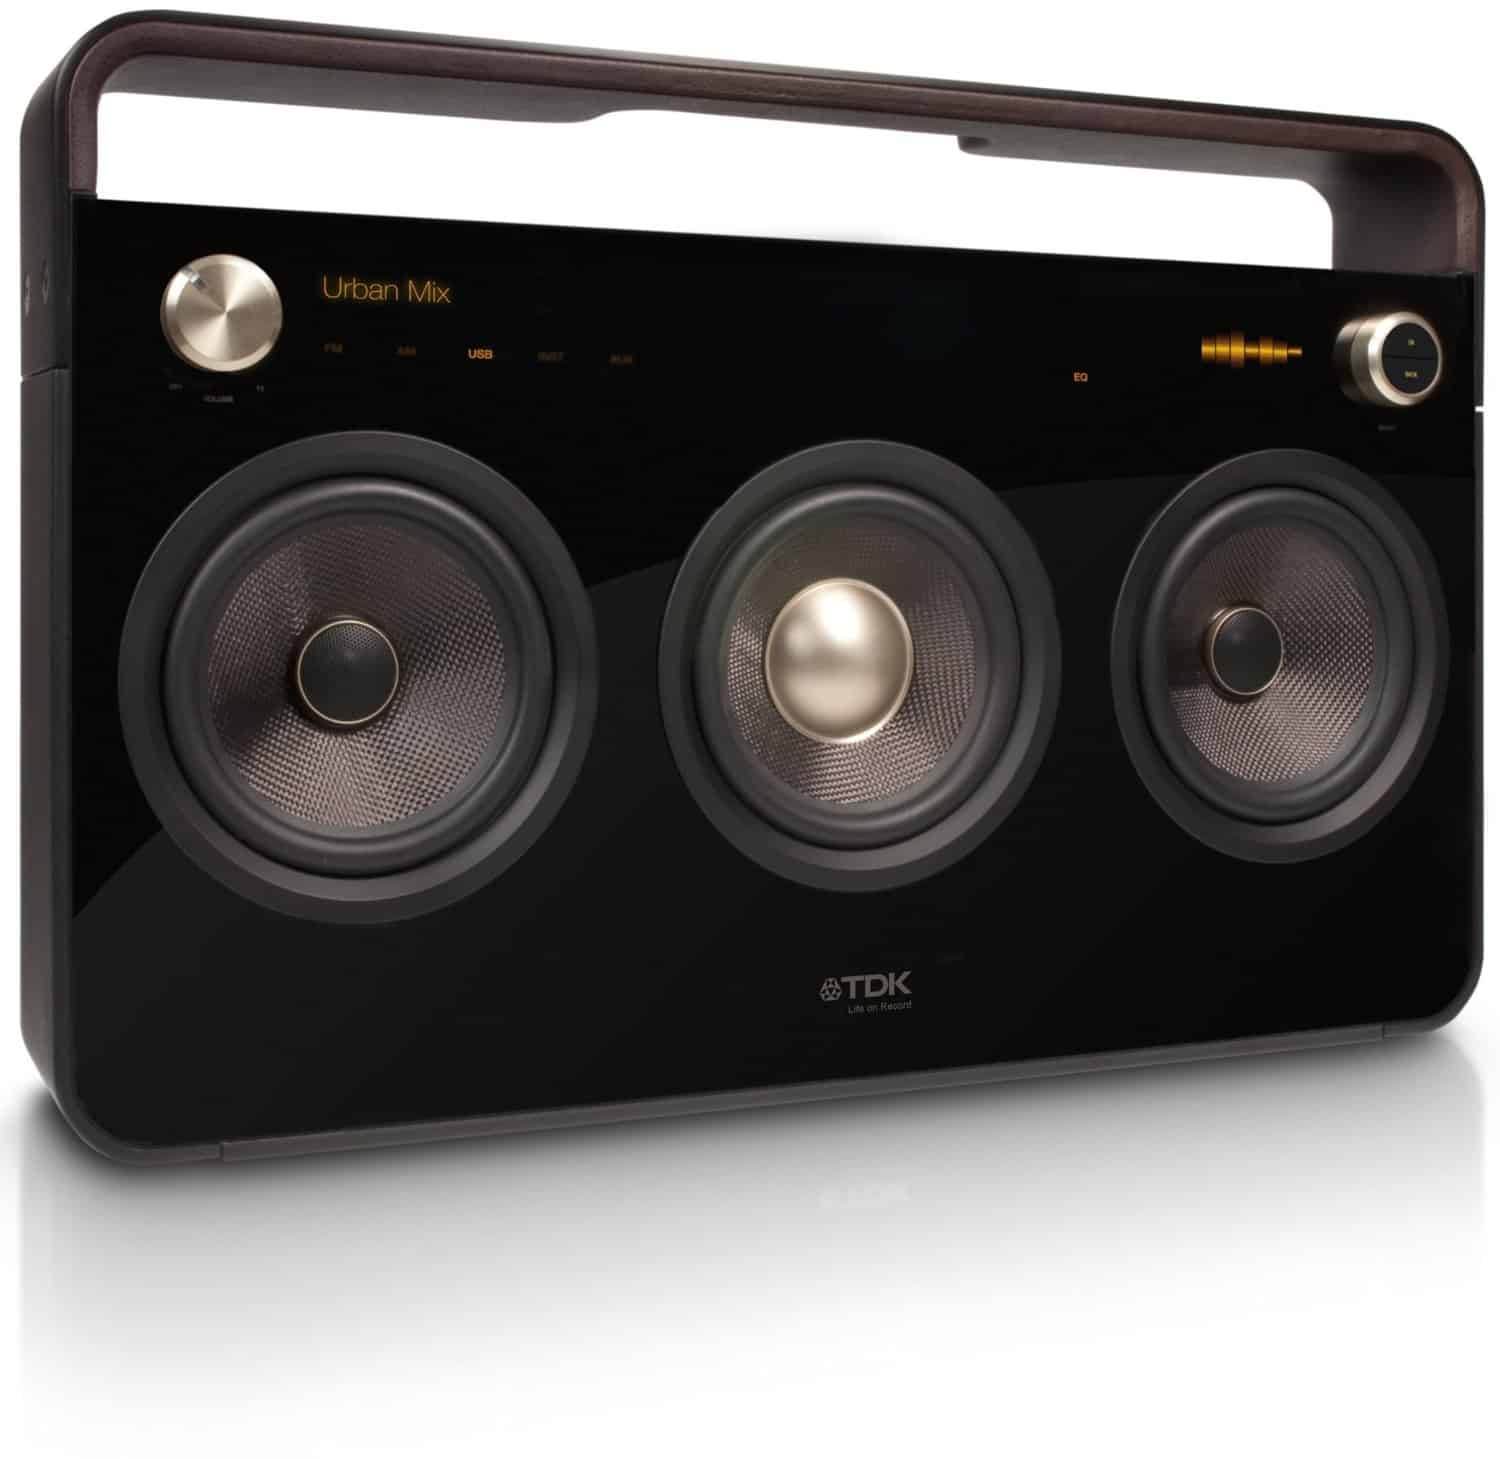 Tdk Life On Record 3 Speaker Boombox Audio System